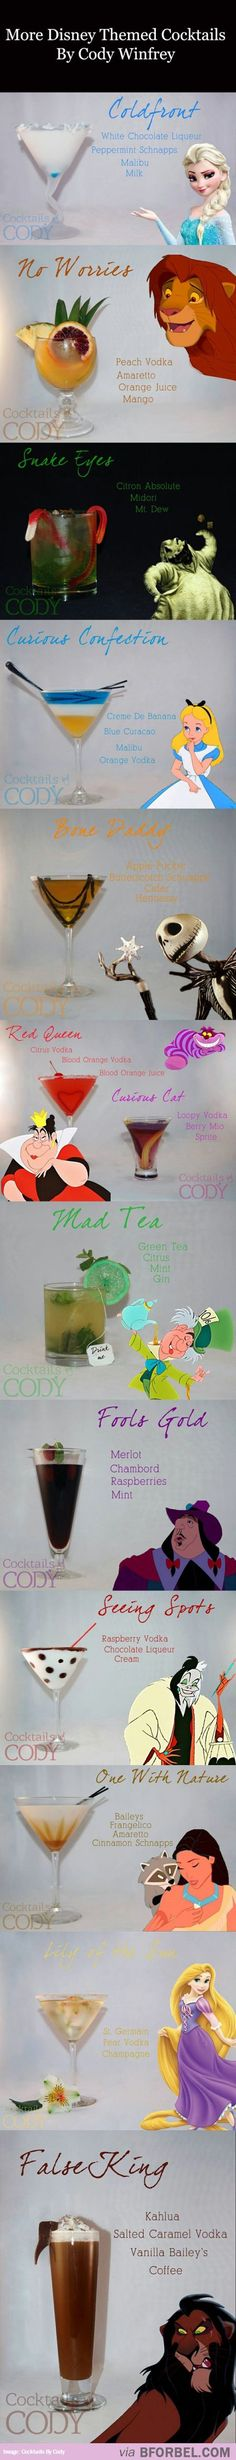 12 Disney-Themed Cocktails